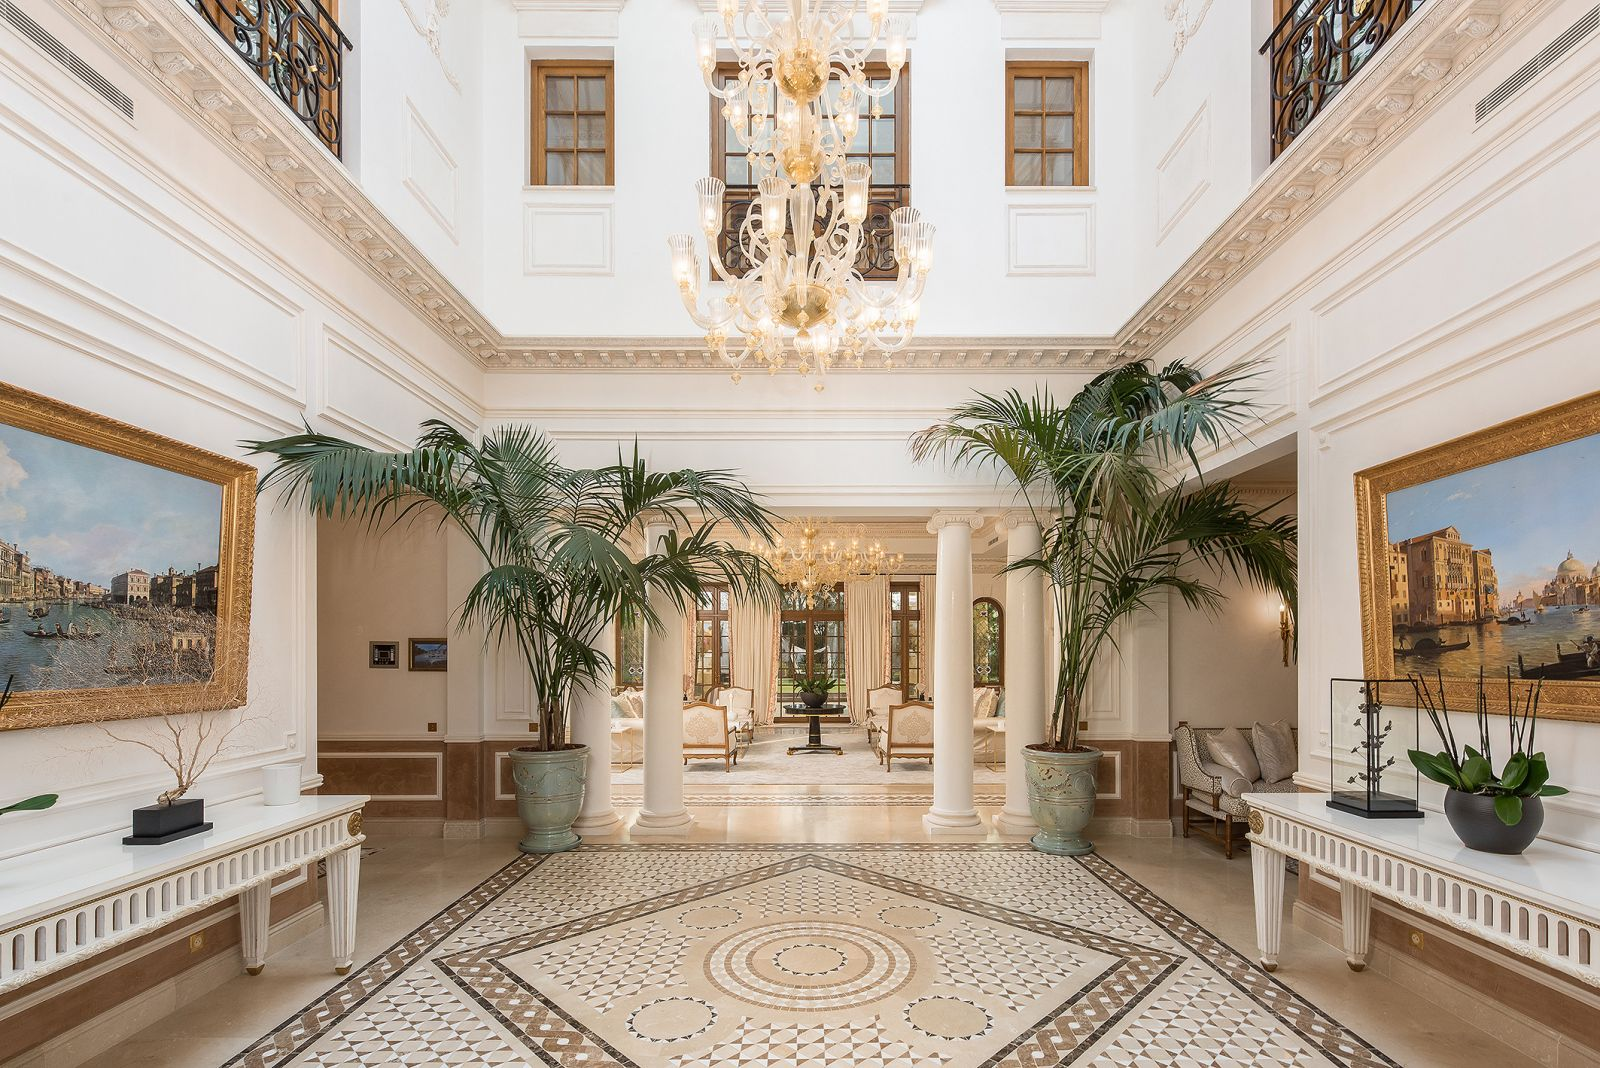 Palais Vénitien, extraordinary palatial property in Cannes, France | FINEST RESIDENCES